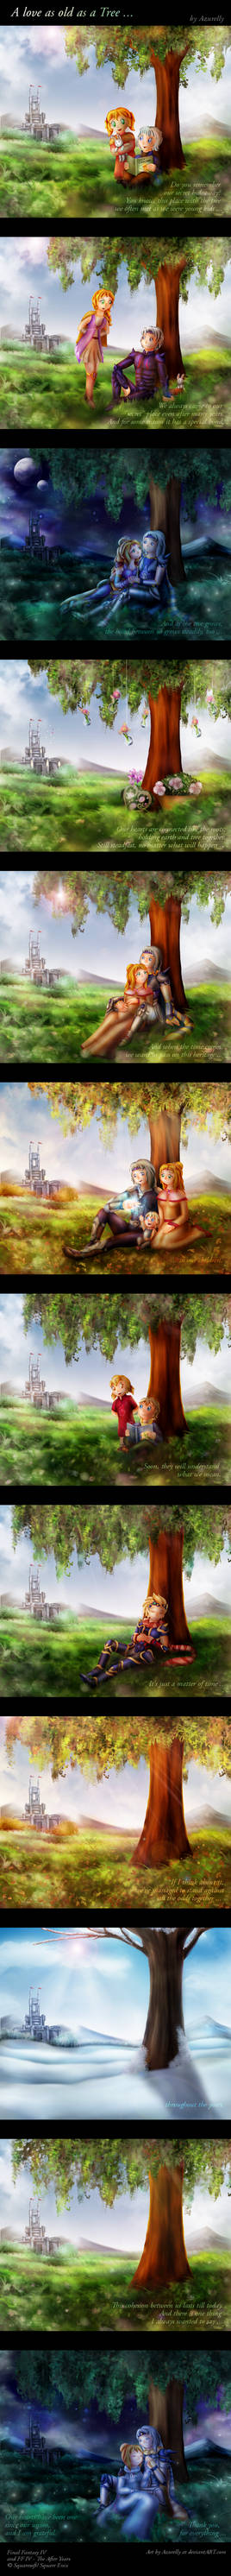 FF IV Story - A love as old as a Tree